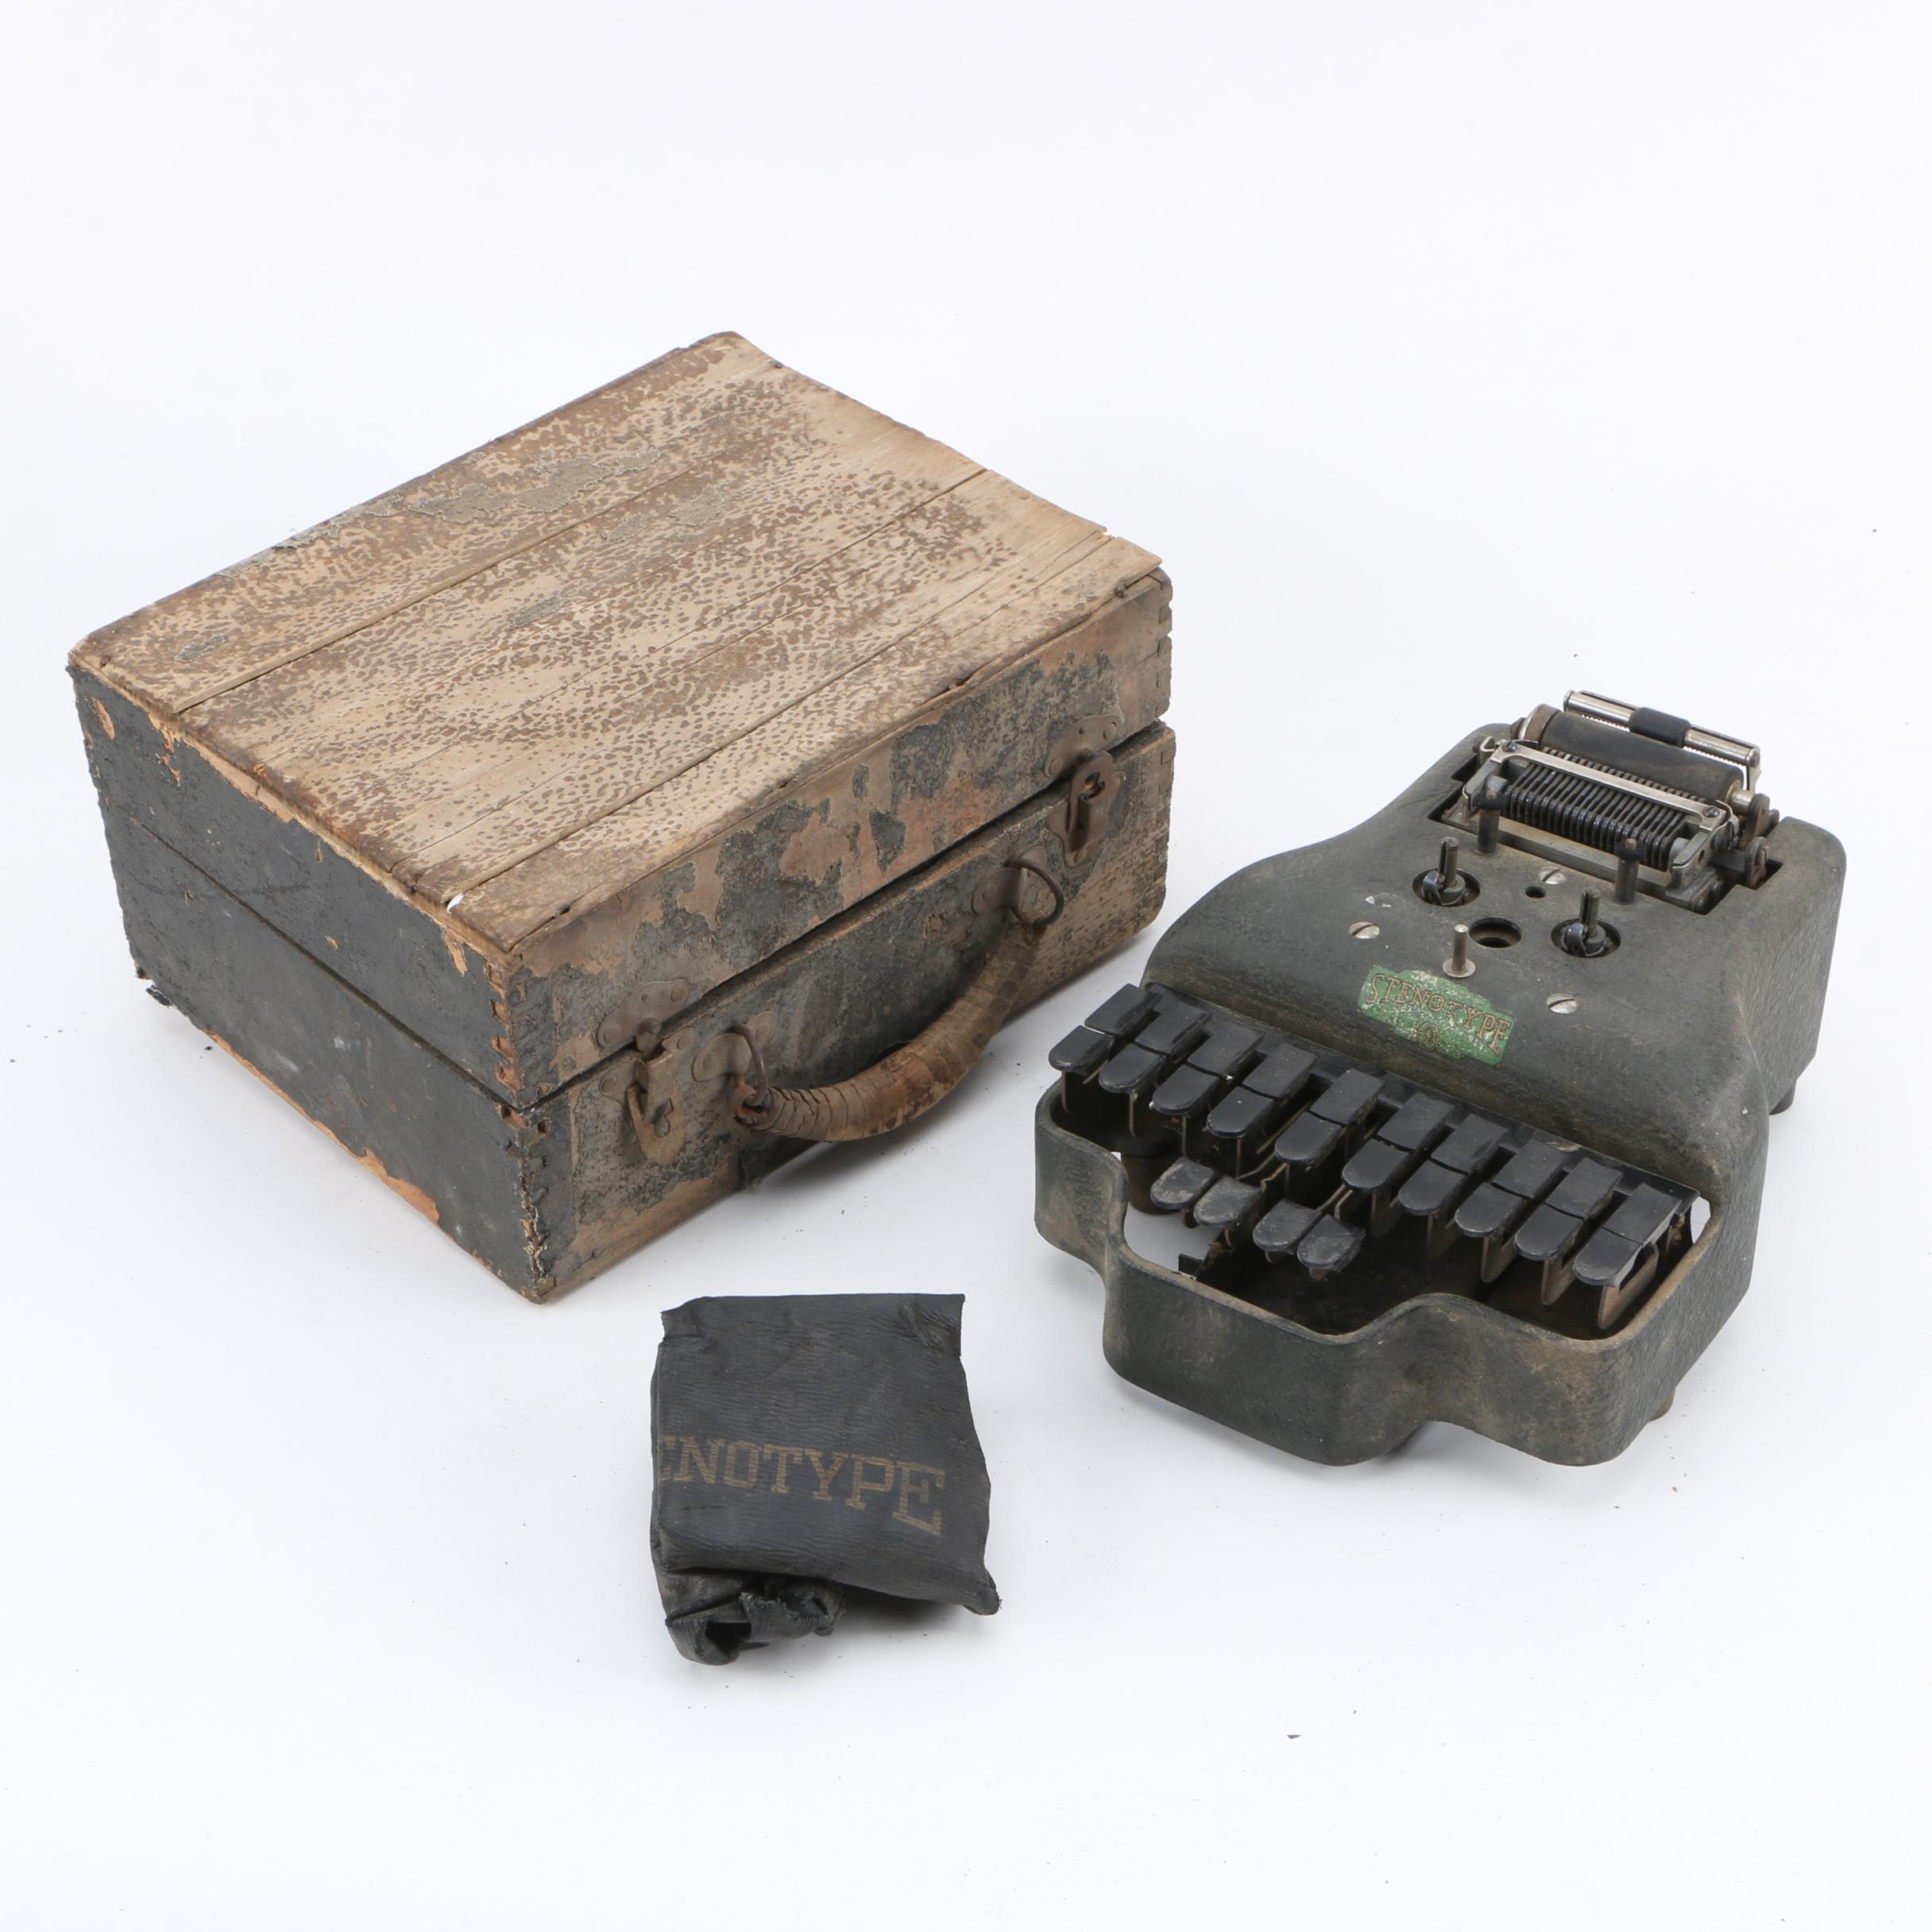 1930s-Era LaSalle Master Model Four Stenotype Machine with Case